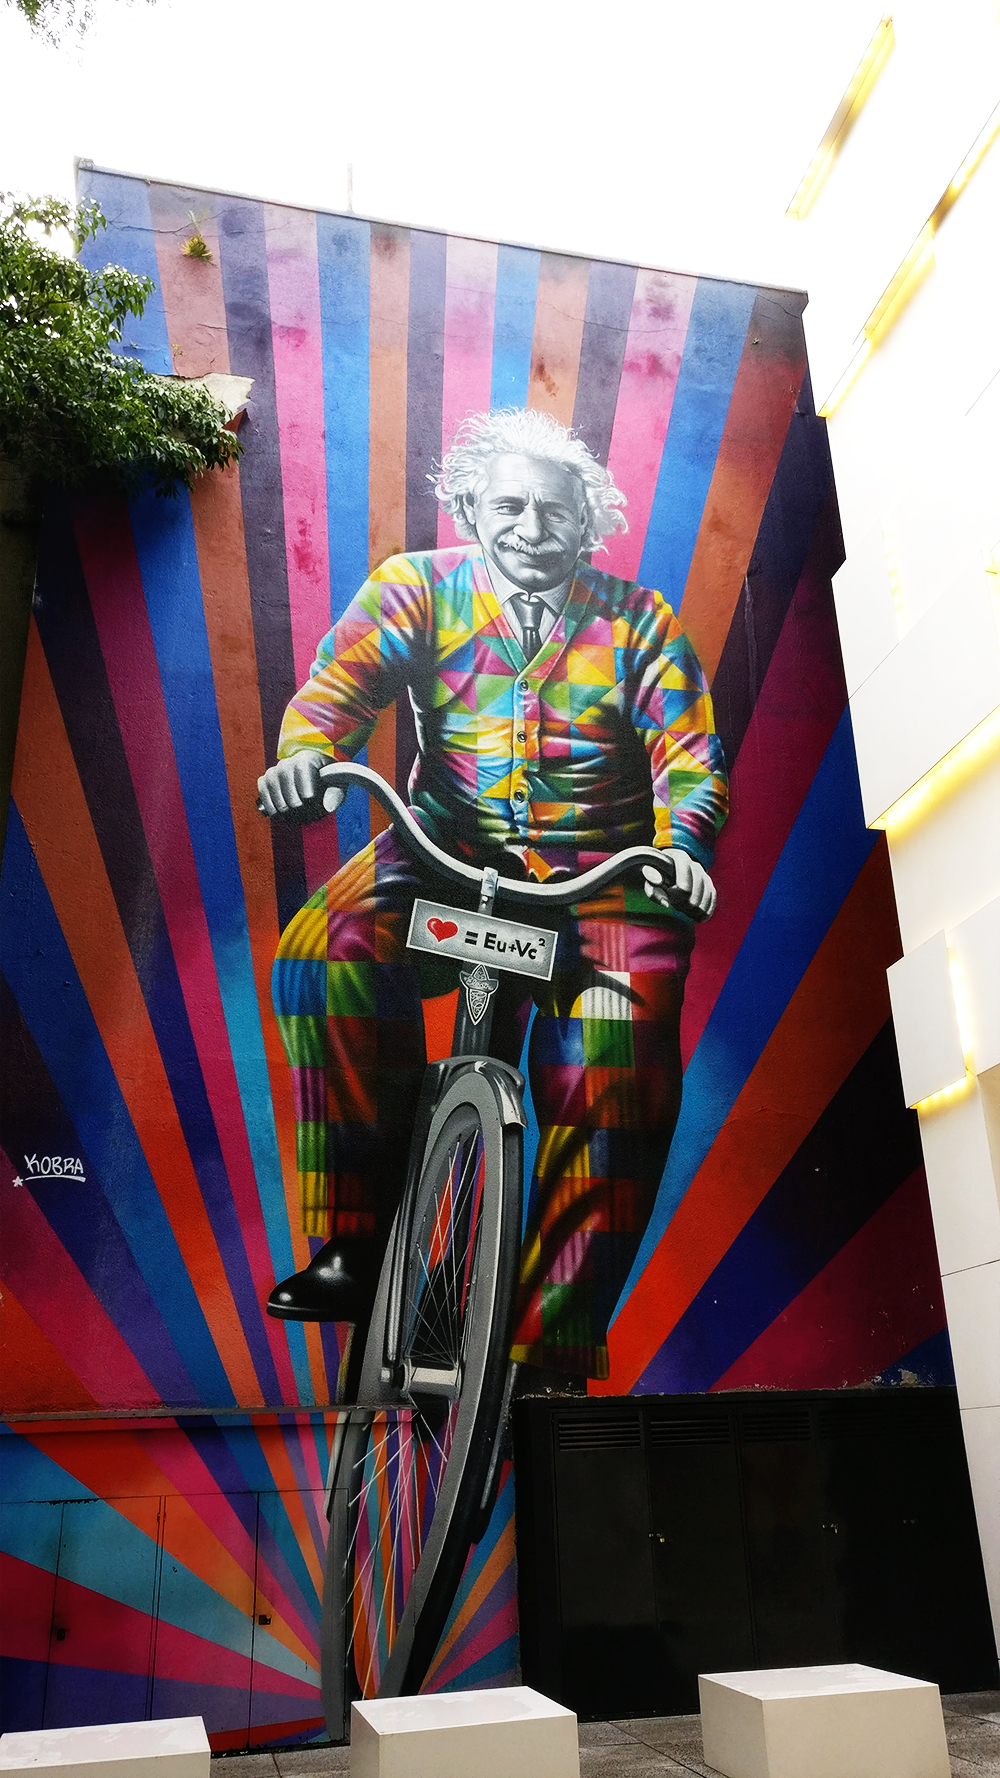 Street art: Einstein mural by Eduardo Kobra on Rua Oscar Freire, São Paulo - 10 things to do and see in São Paulo | Aliz's Wonderland